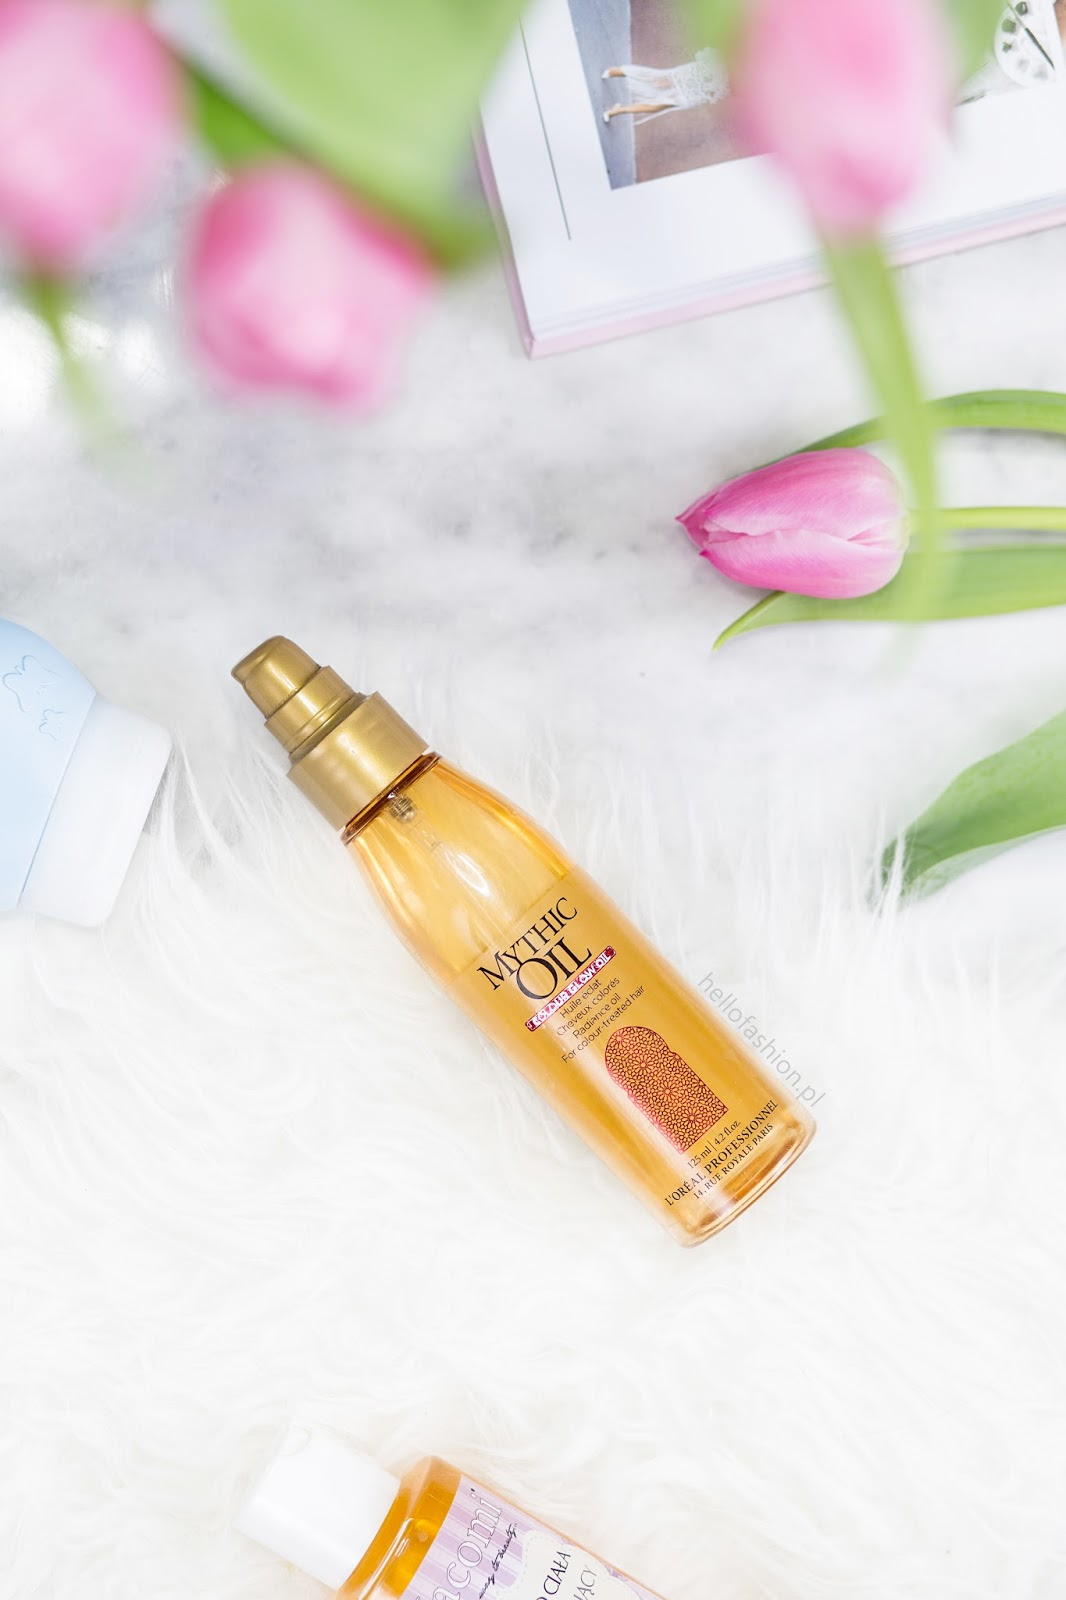 mythic oil serum